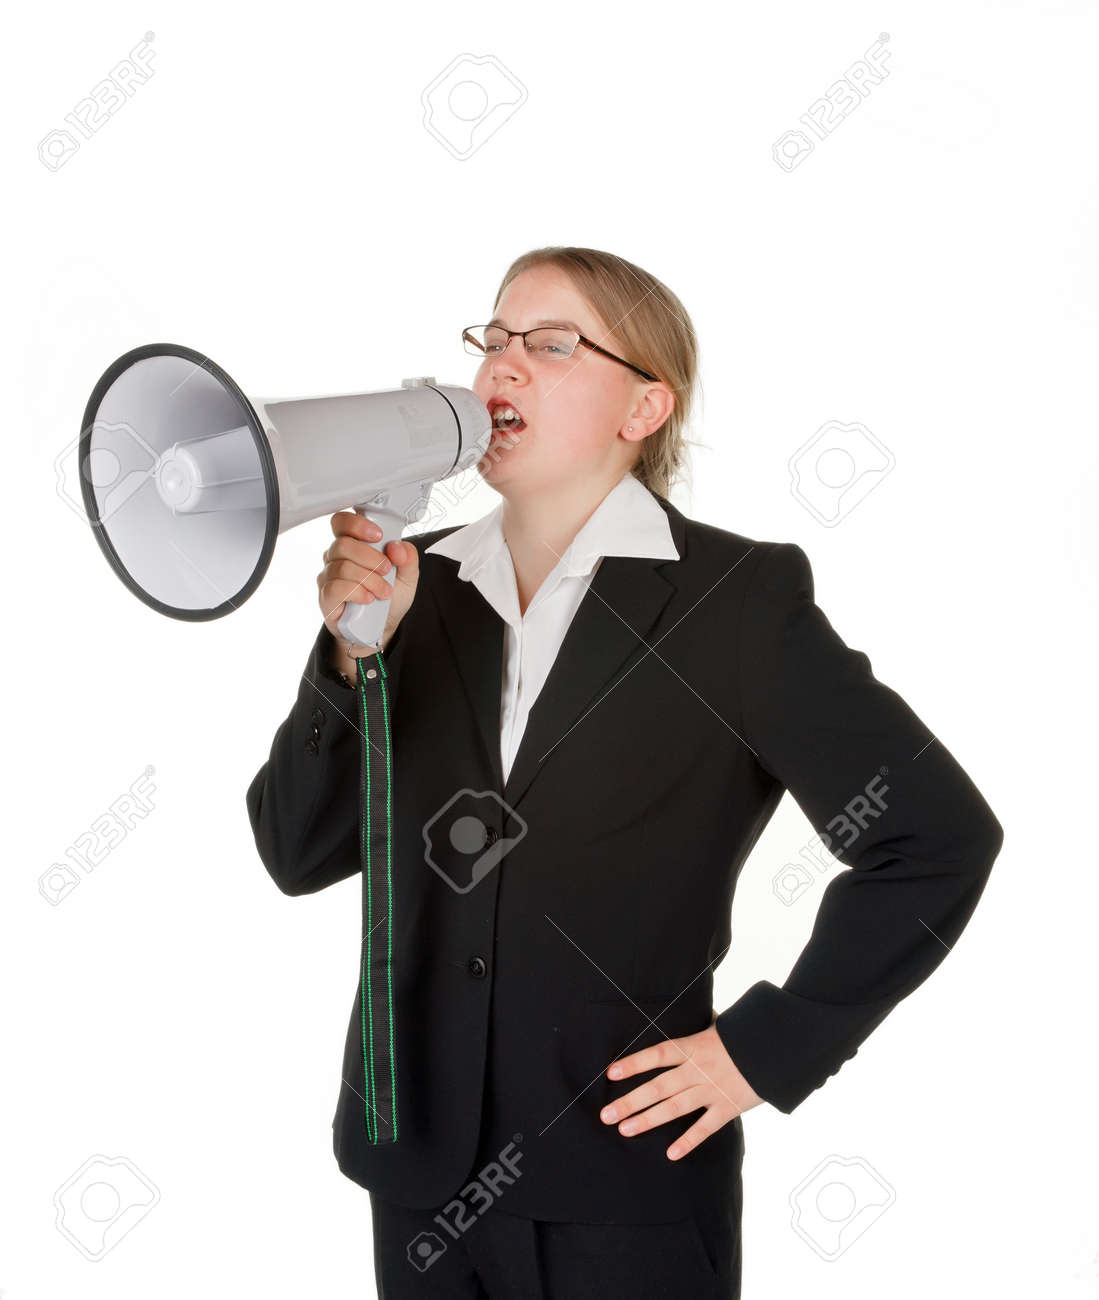 young business woman with megaphone isolated on white background Stock Photo - 7267495